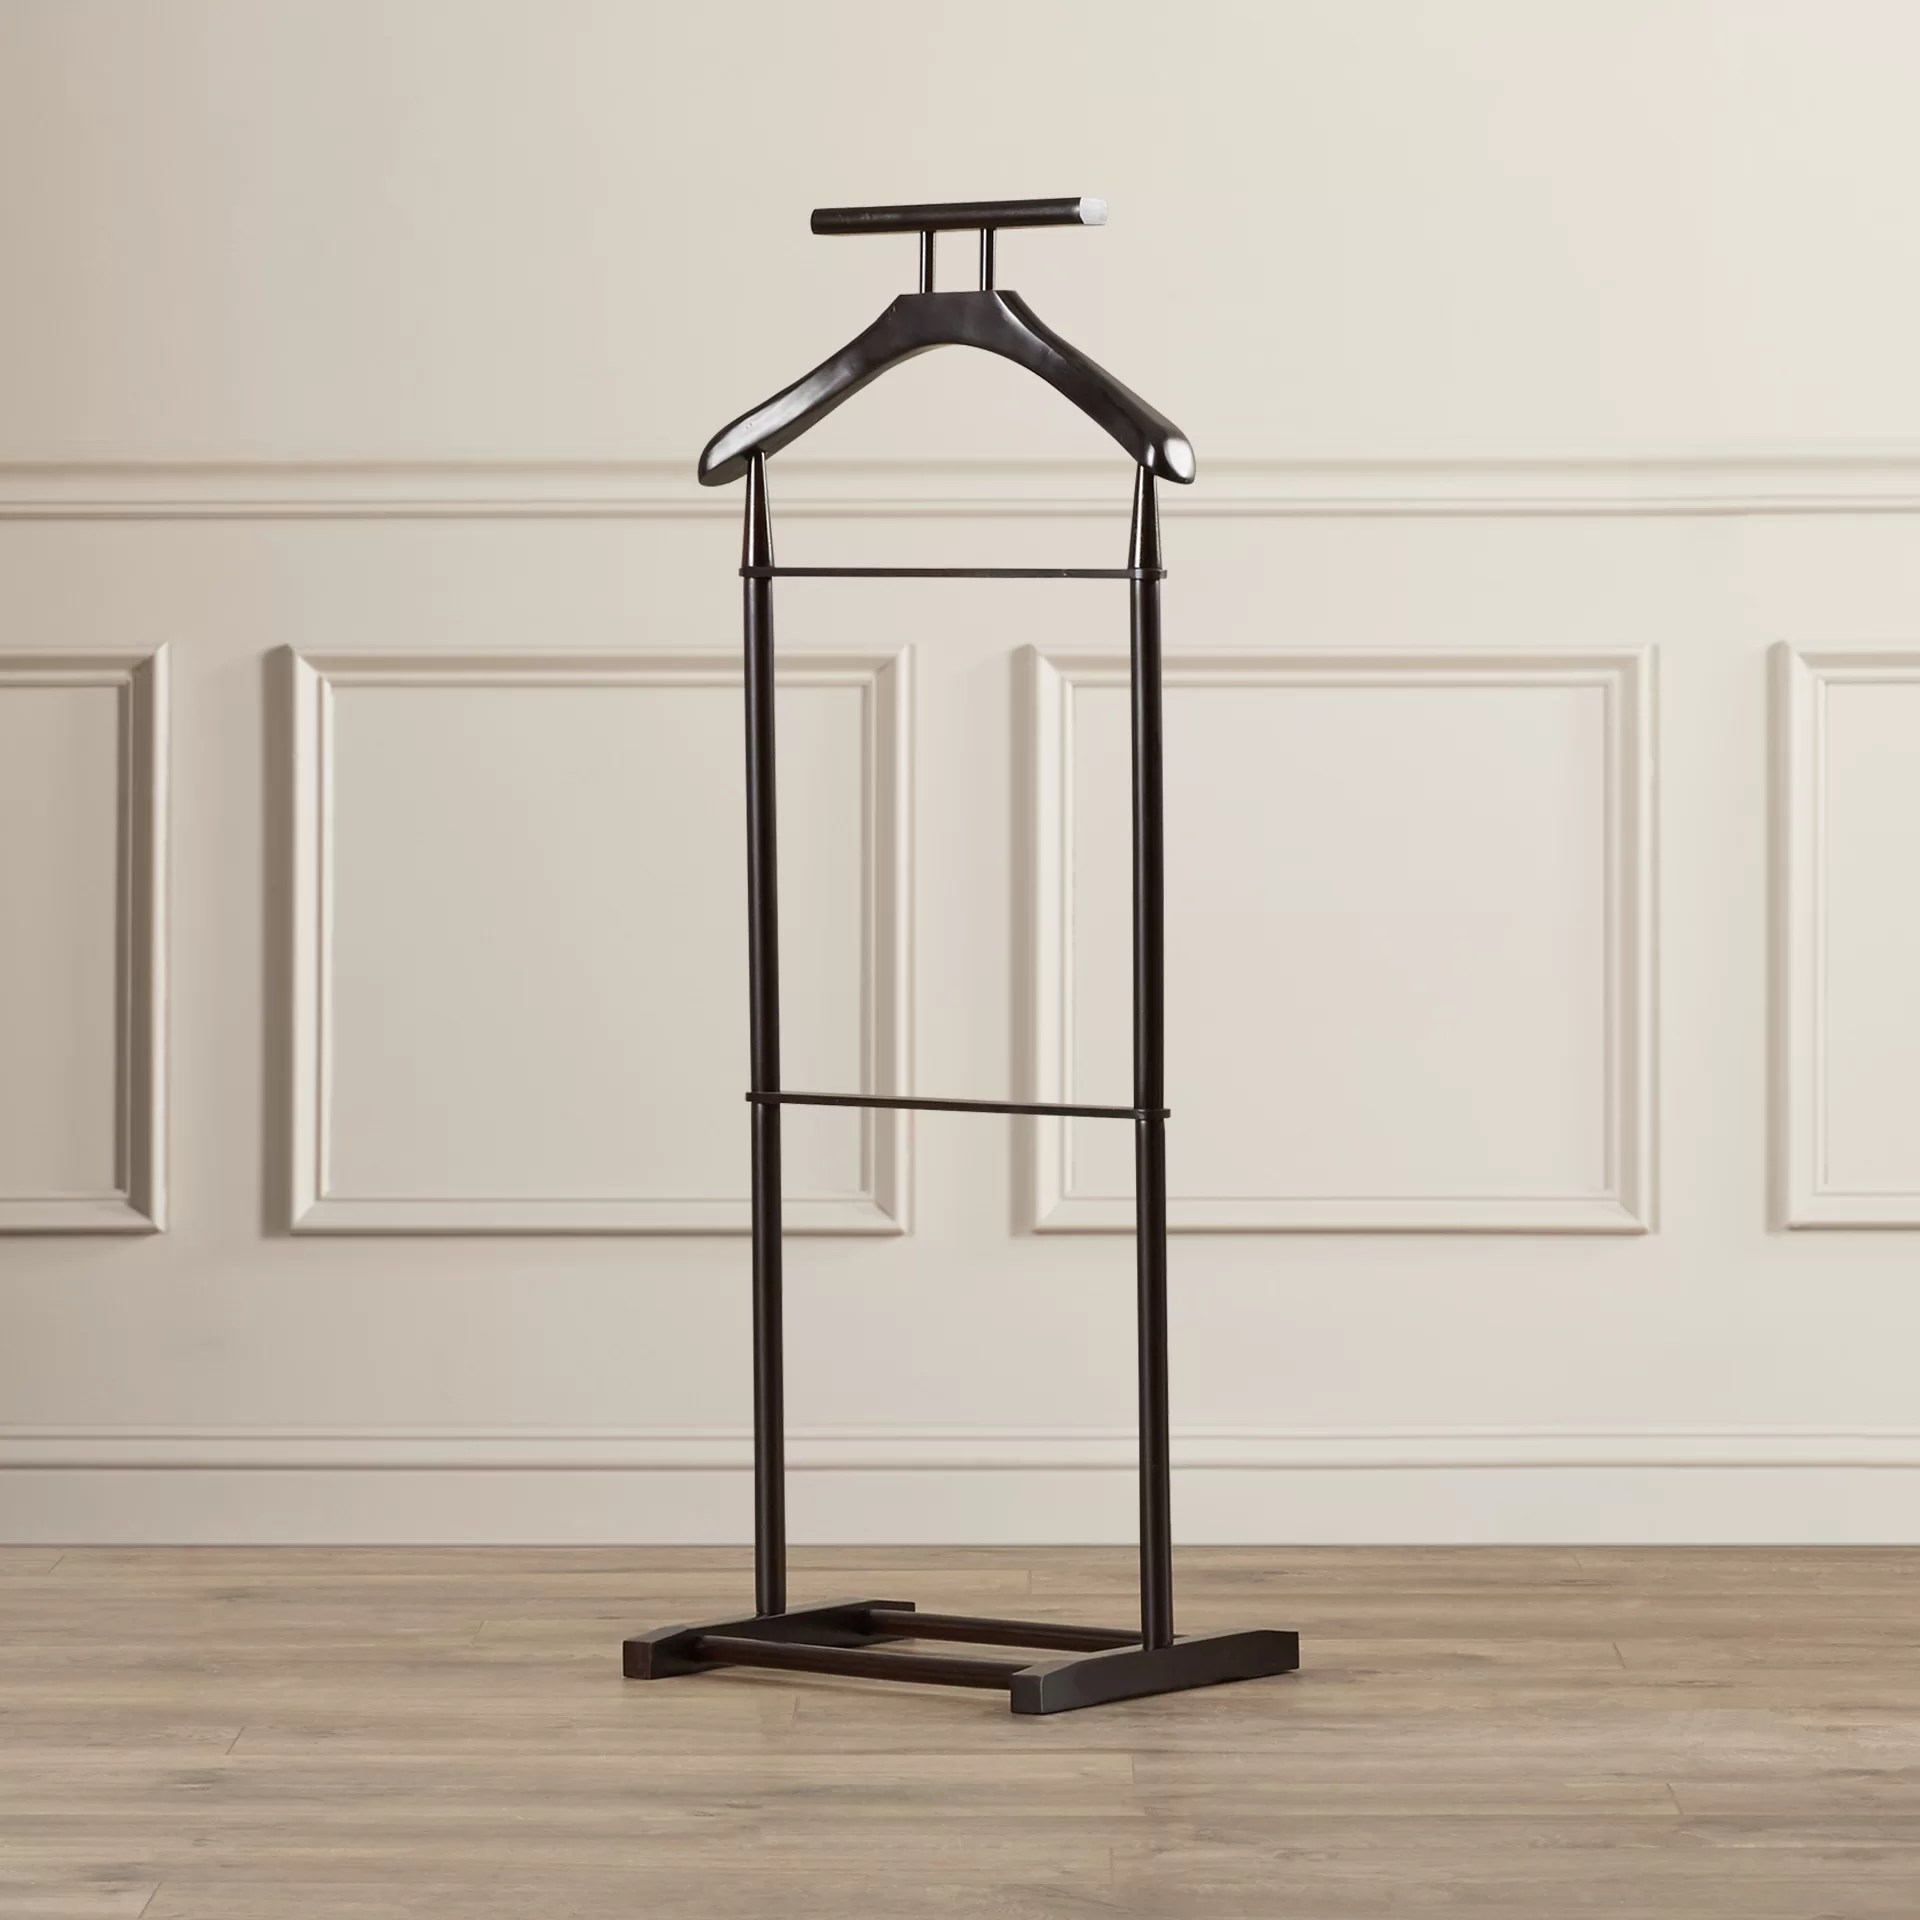 mens chair valet stand how to make a wooden stop squeaking charlton home men 39s and reviews wayfair